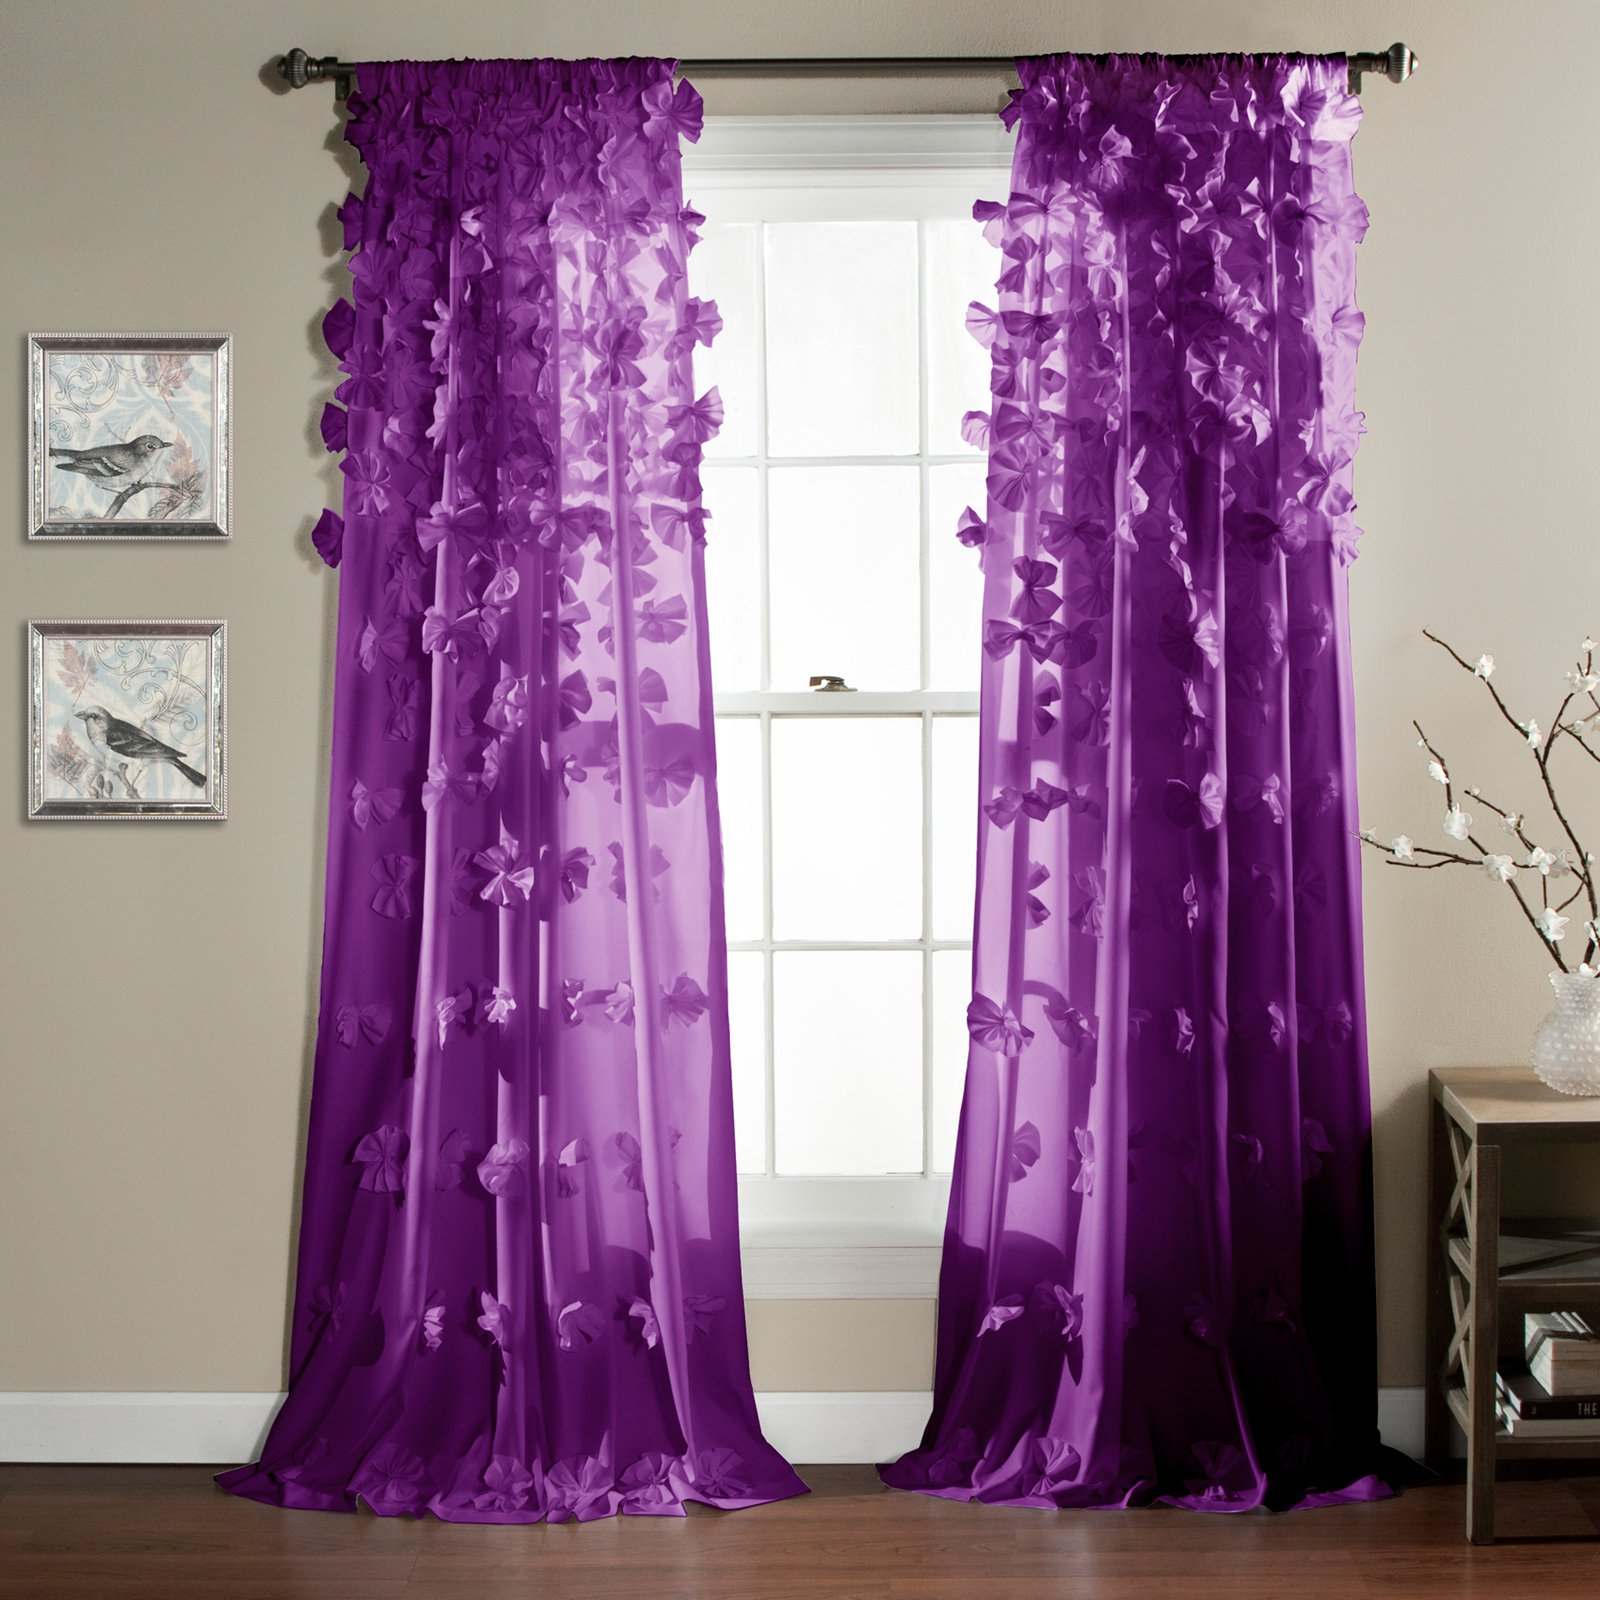 superior Pink And Purple Curtain Part - 11: Riley Girls Bedroom Curtain Panel - Walmart.com